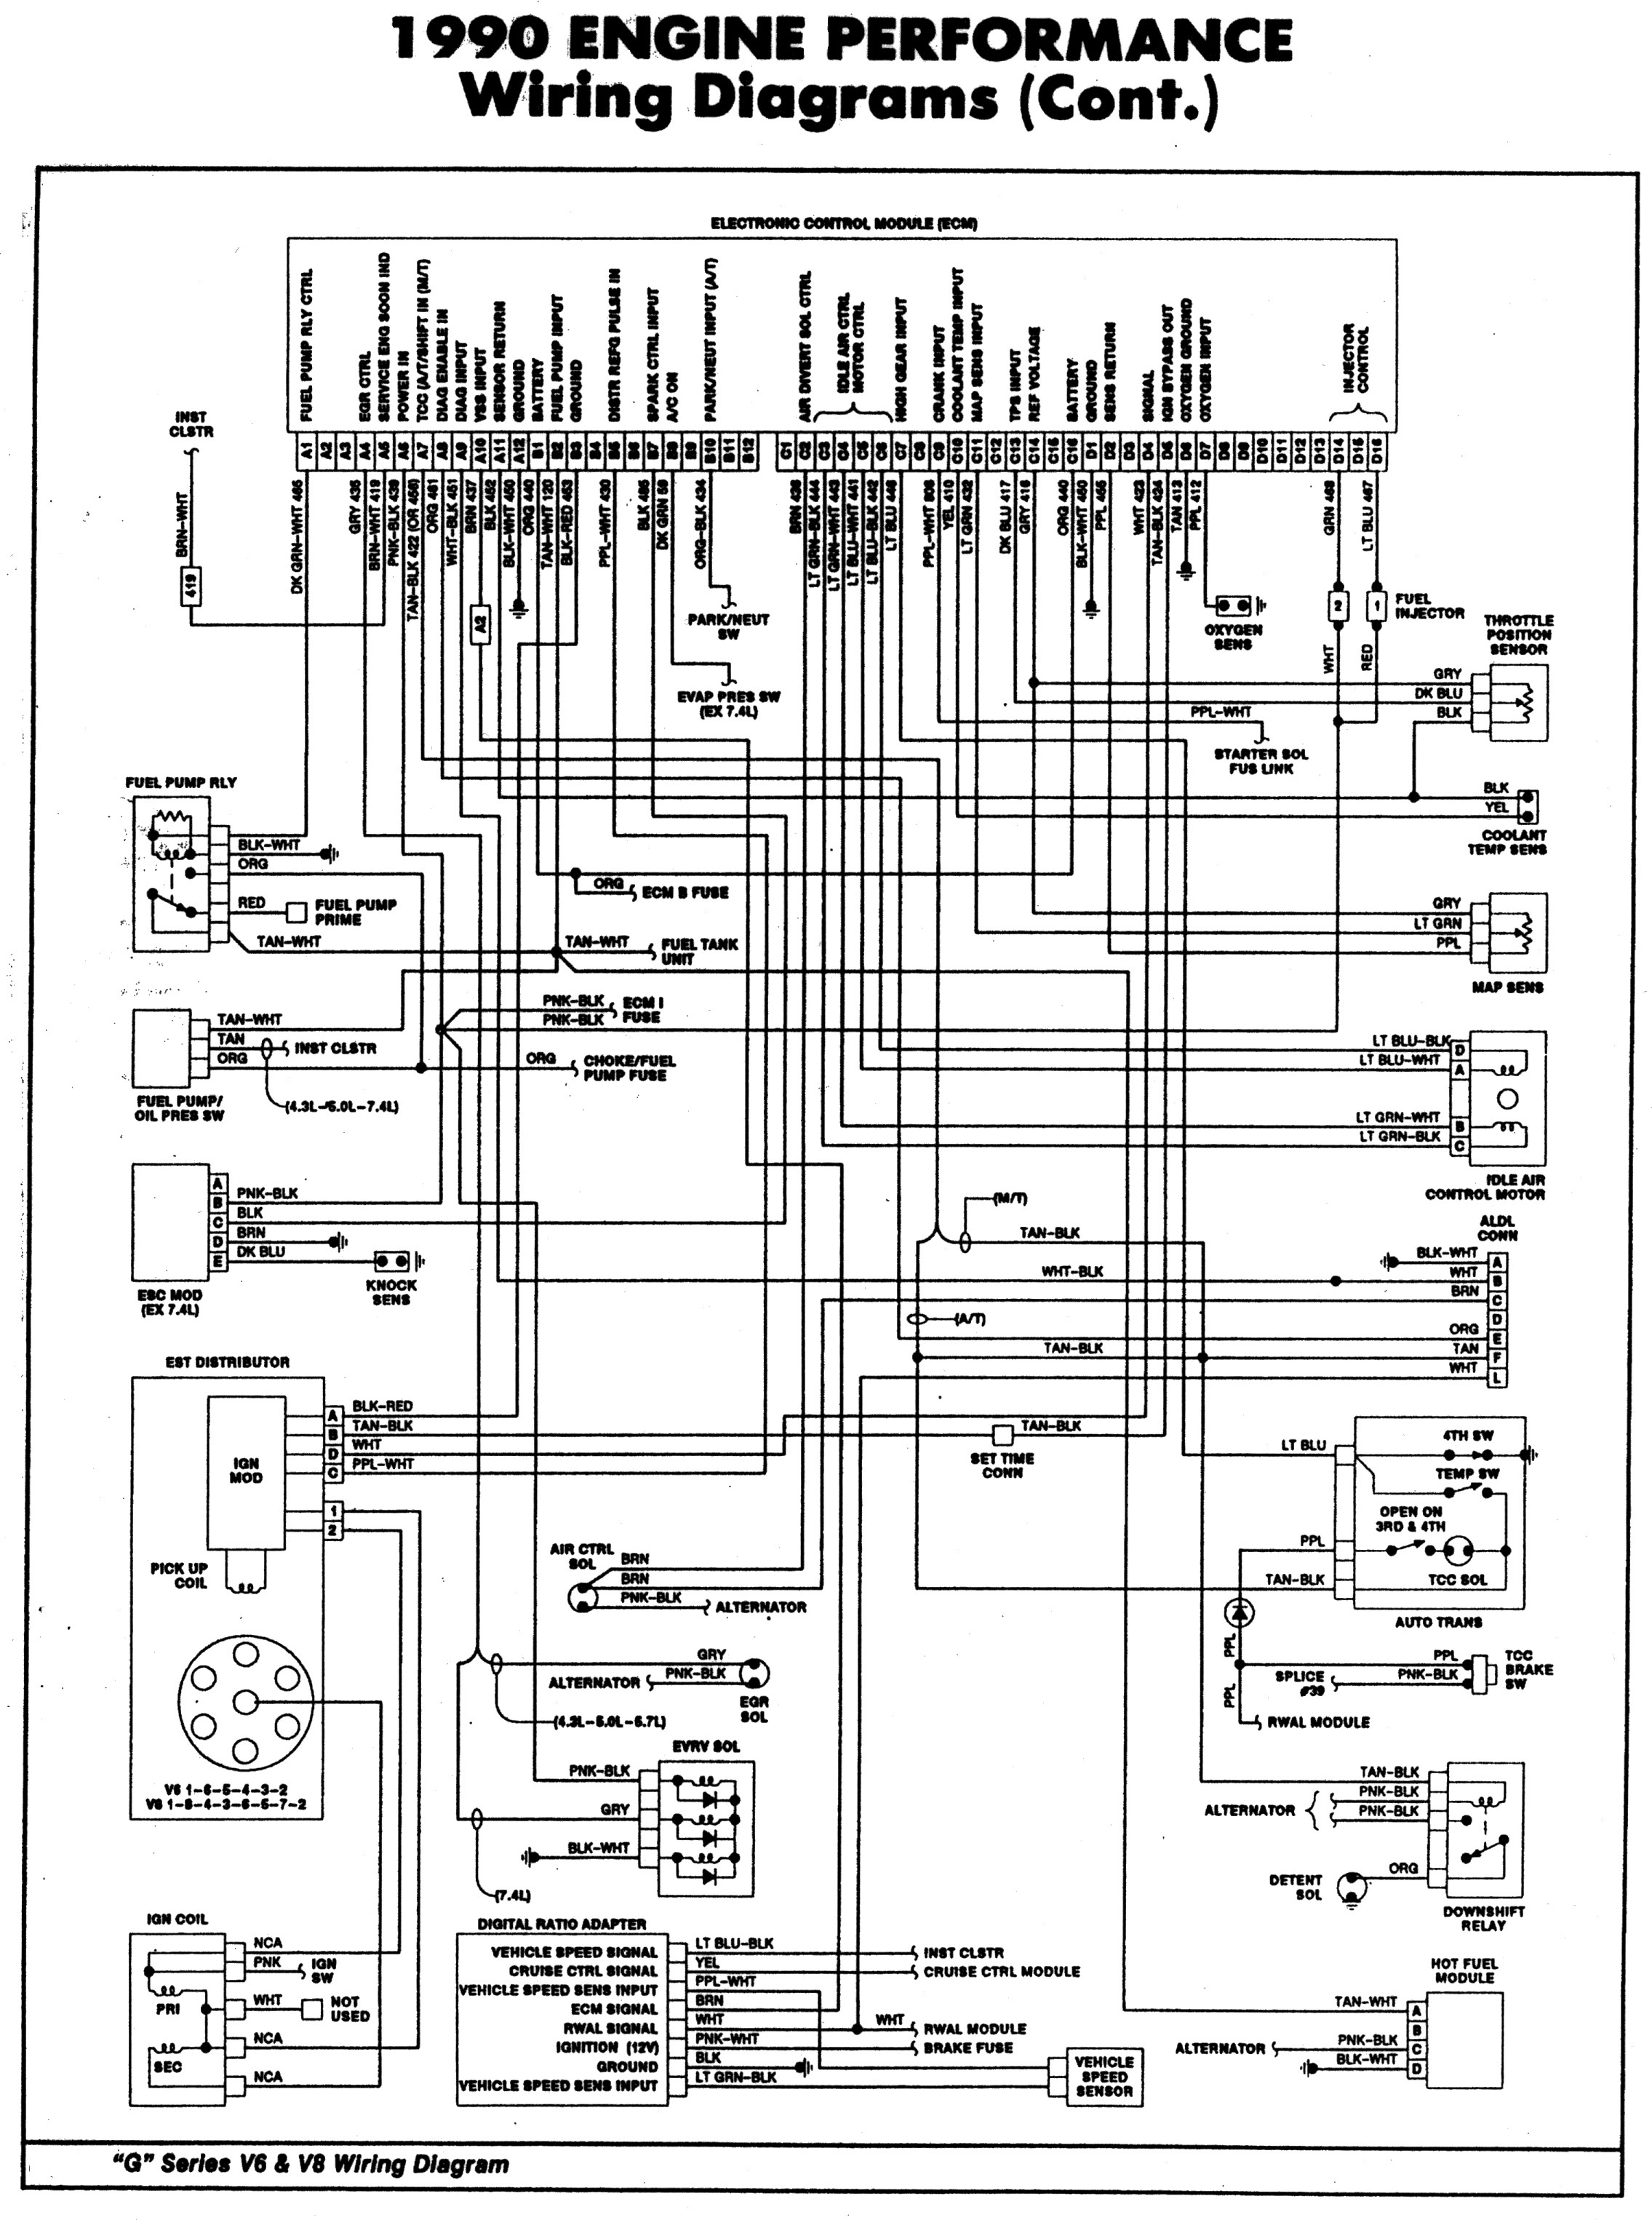 small resolution of 1994 chevy truck engine diagram wiring diagram query 1994 chevy truck wiring diagram image details wiring